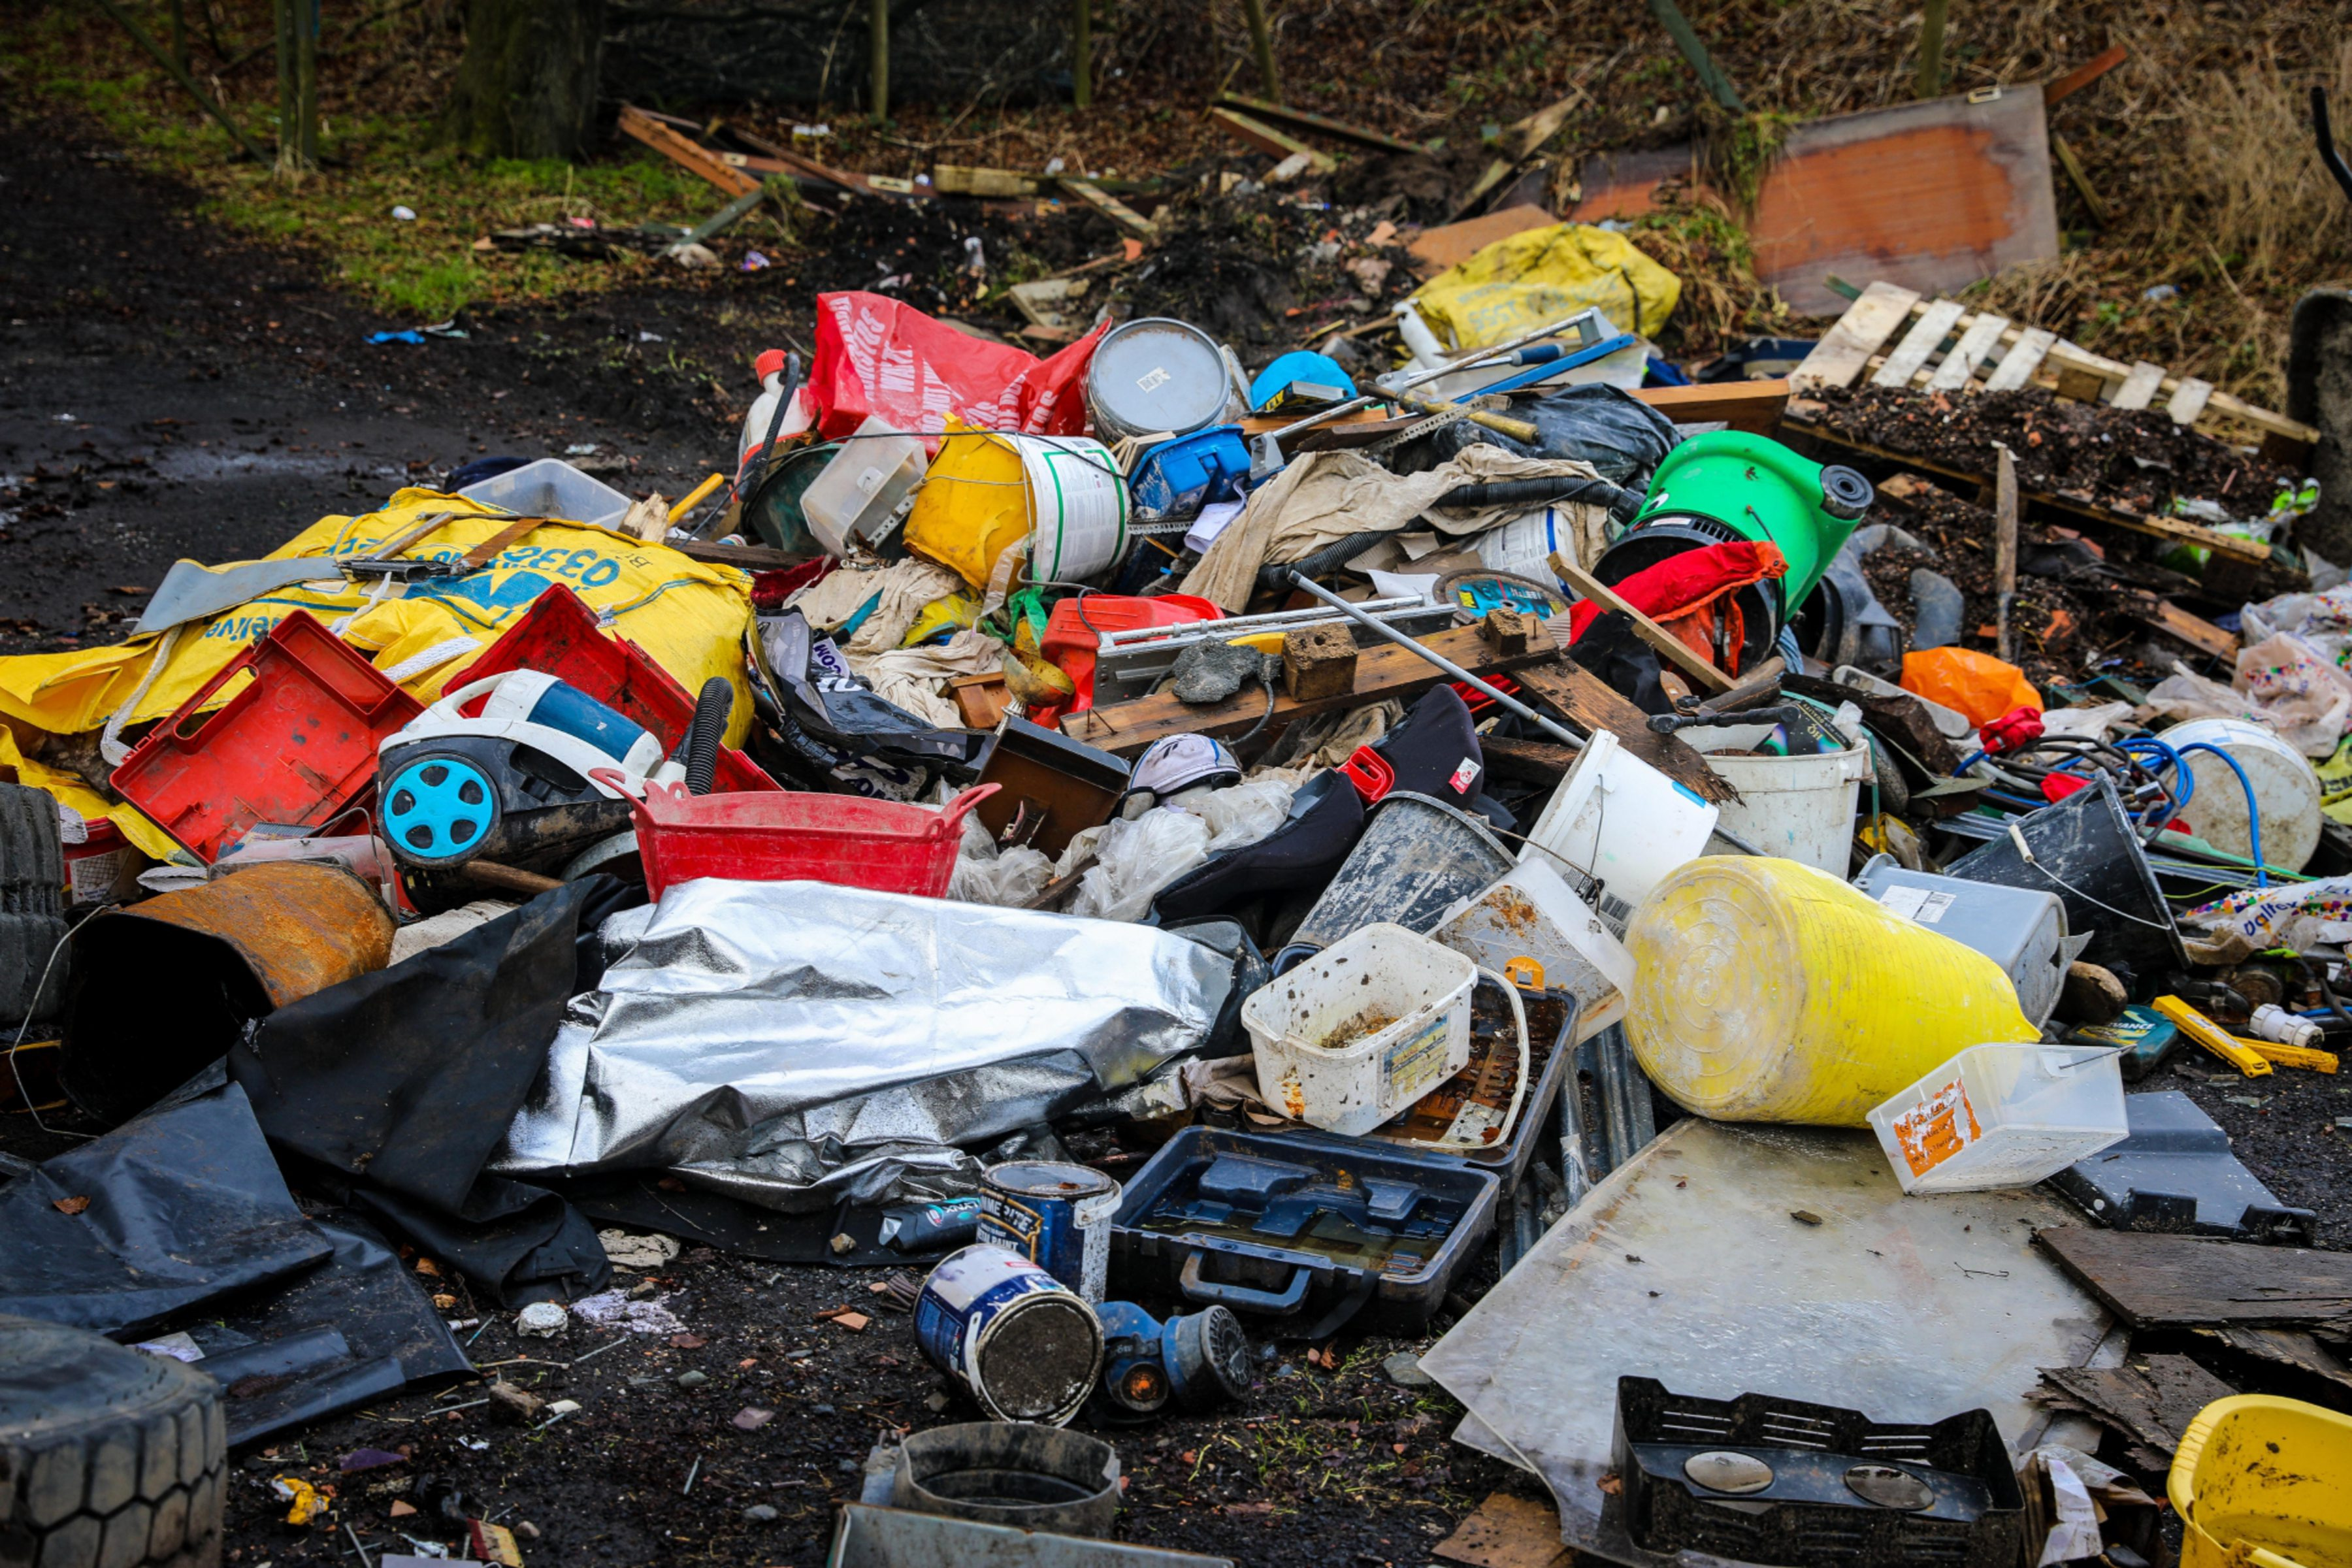 Flytipping like this has blighted Fife communities